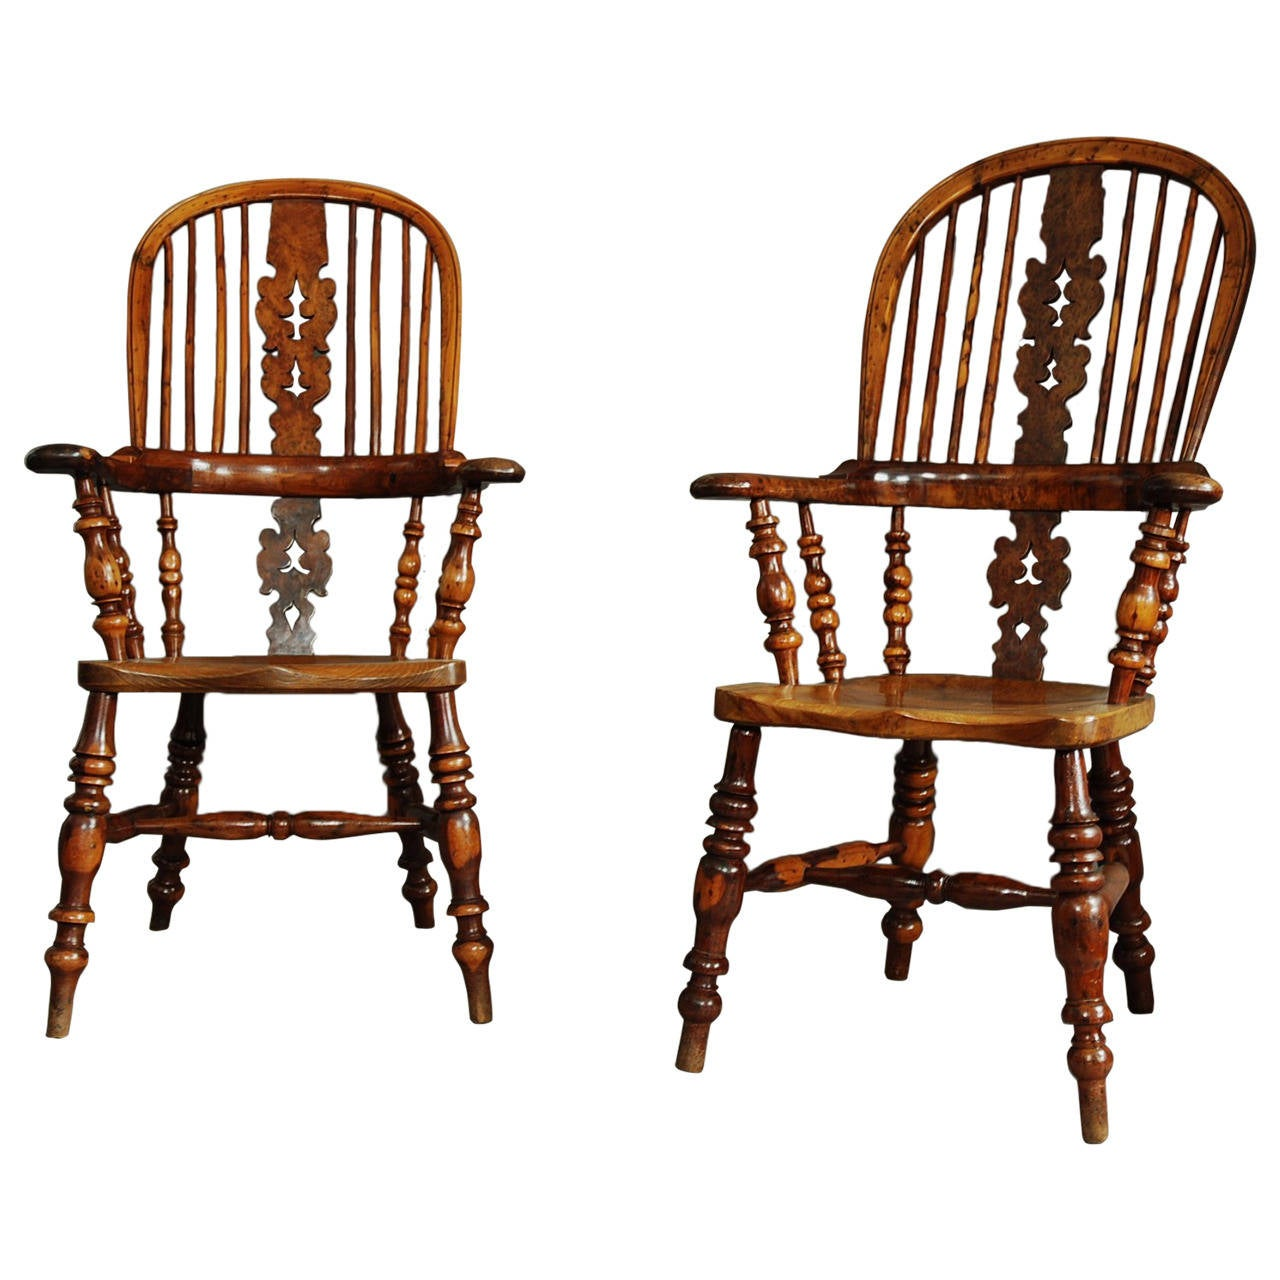 Pair of Broad-Arm Burr Yew Wood, High Back Windsor Chairs 1 - Pair Of Broad-Arm Burr Yew Wood, High Back Windsor Chairs For Sale